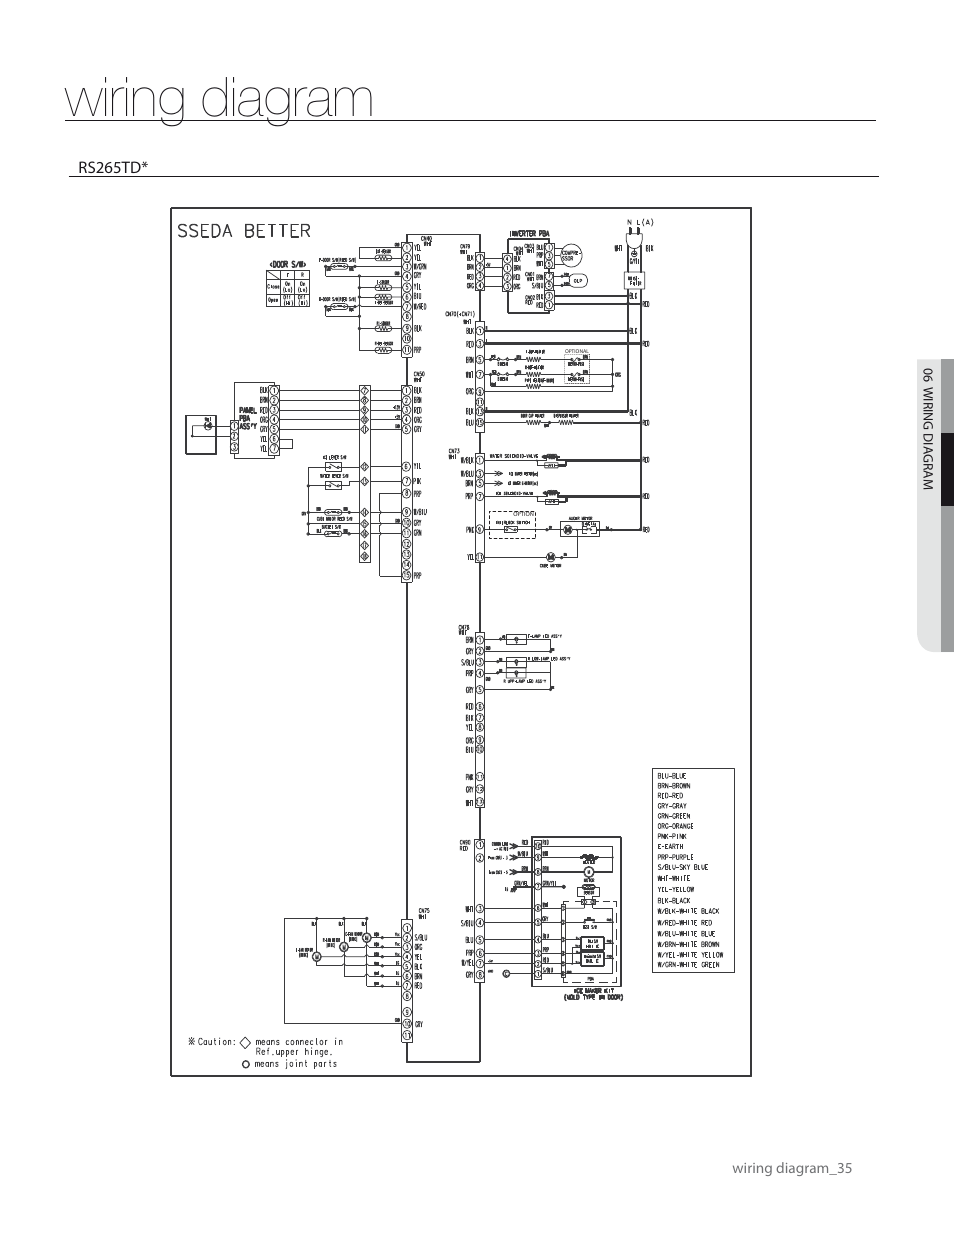 samsung rs267tdwp xaa page35 wiring diagram samsung rs267tdwp xaa user manual page 35 72 samsung wiring diagram at soozxer.org